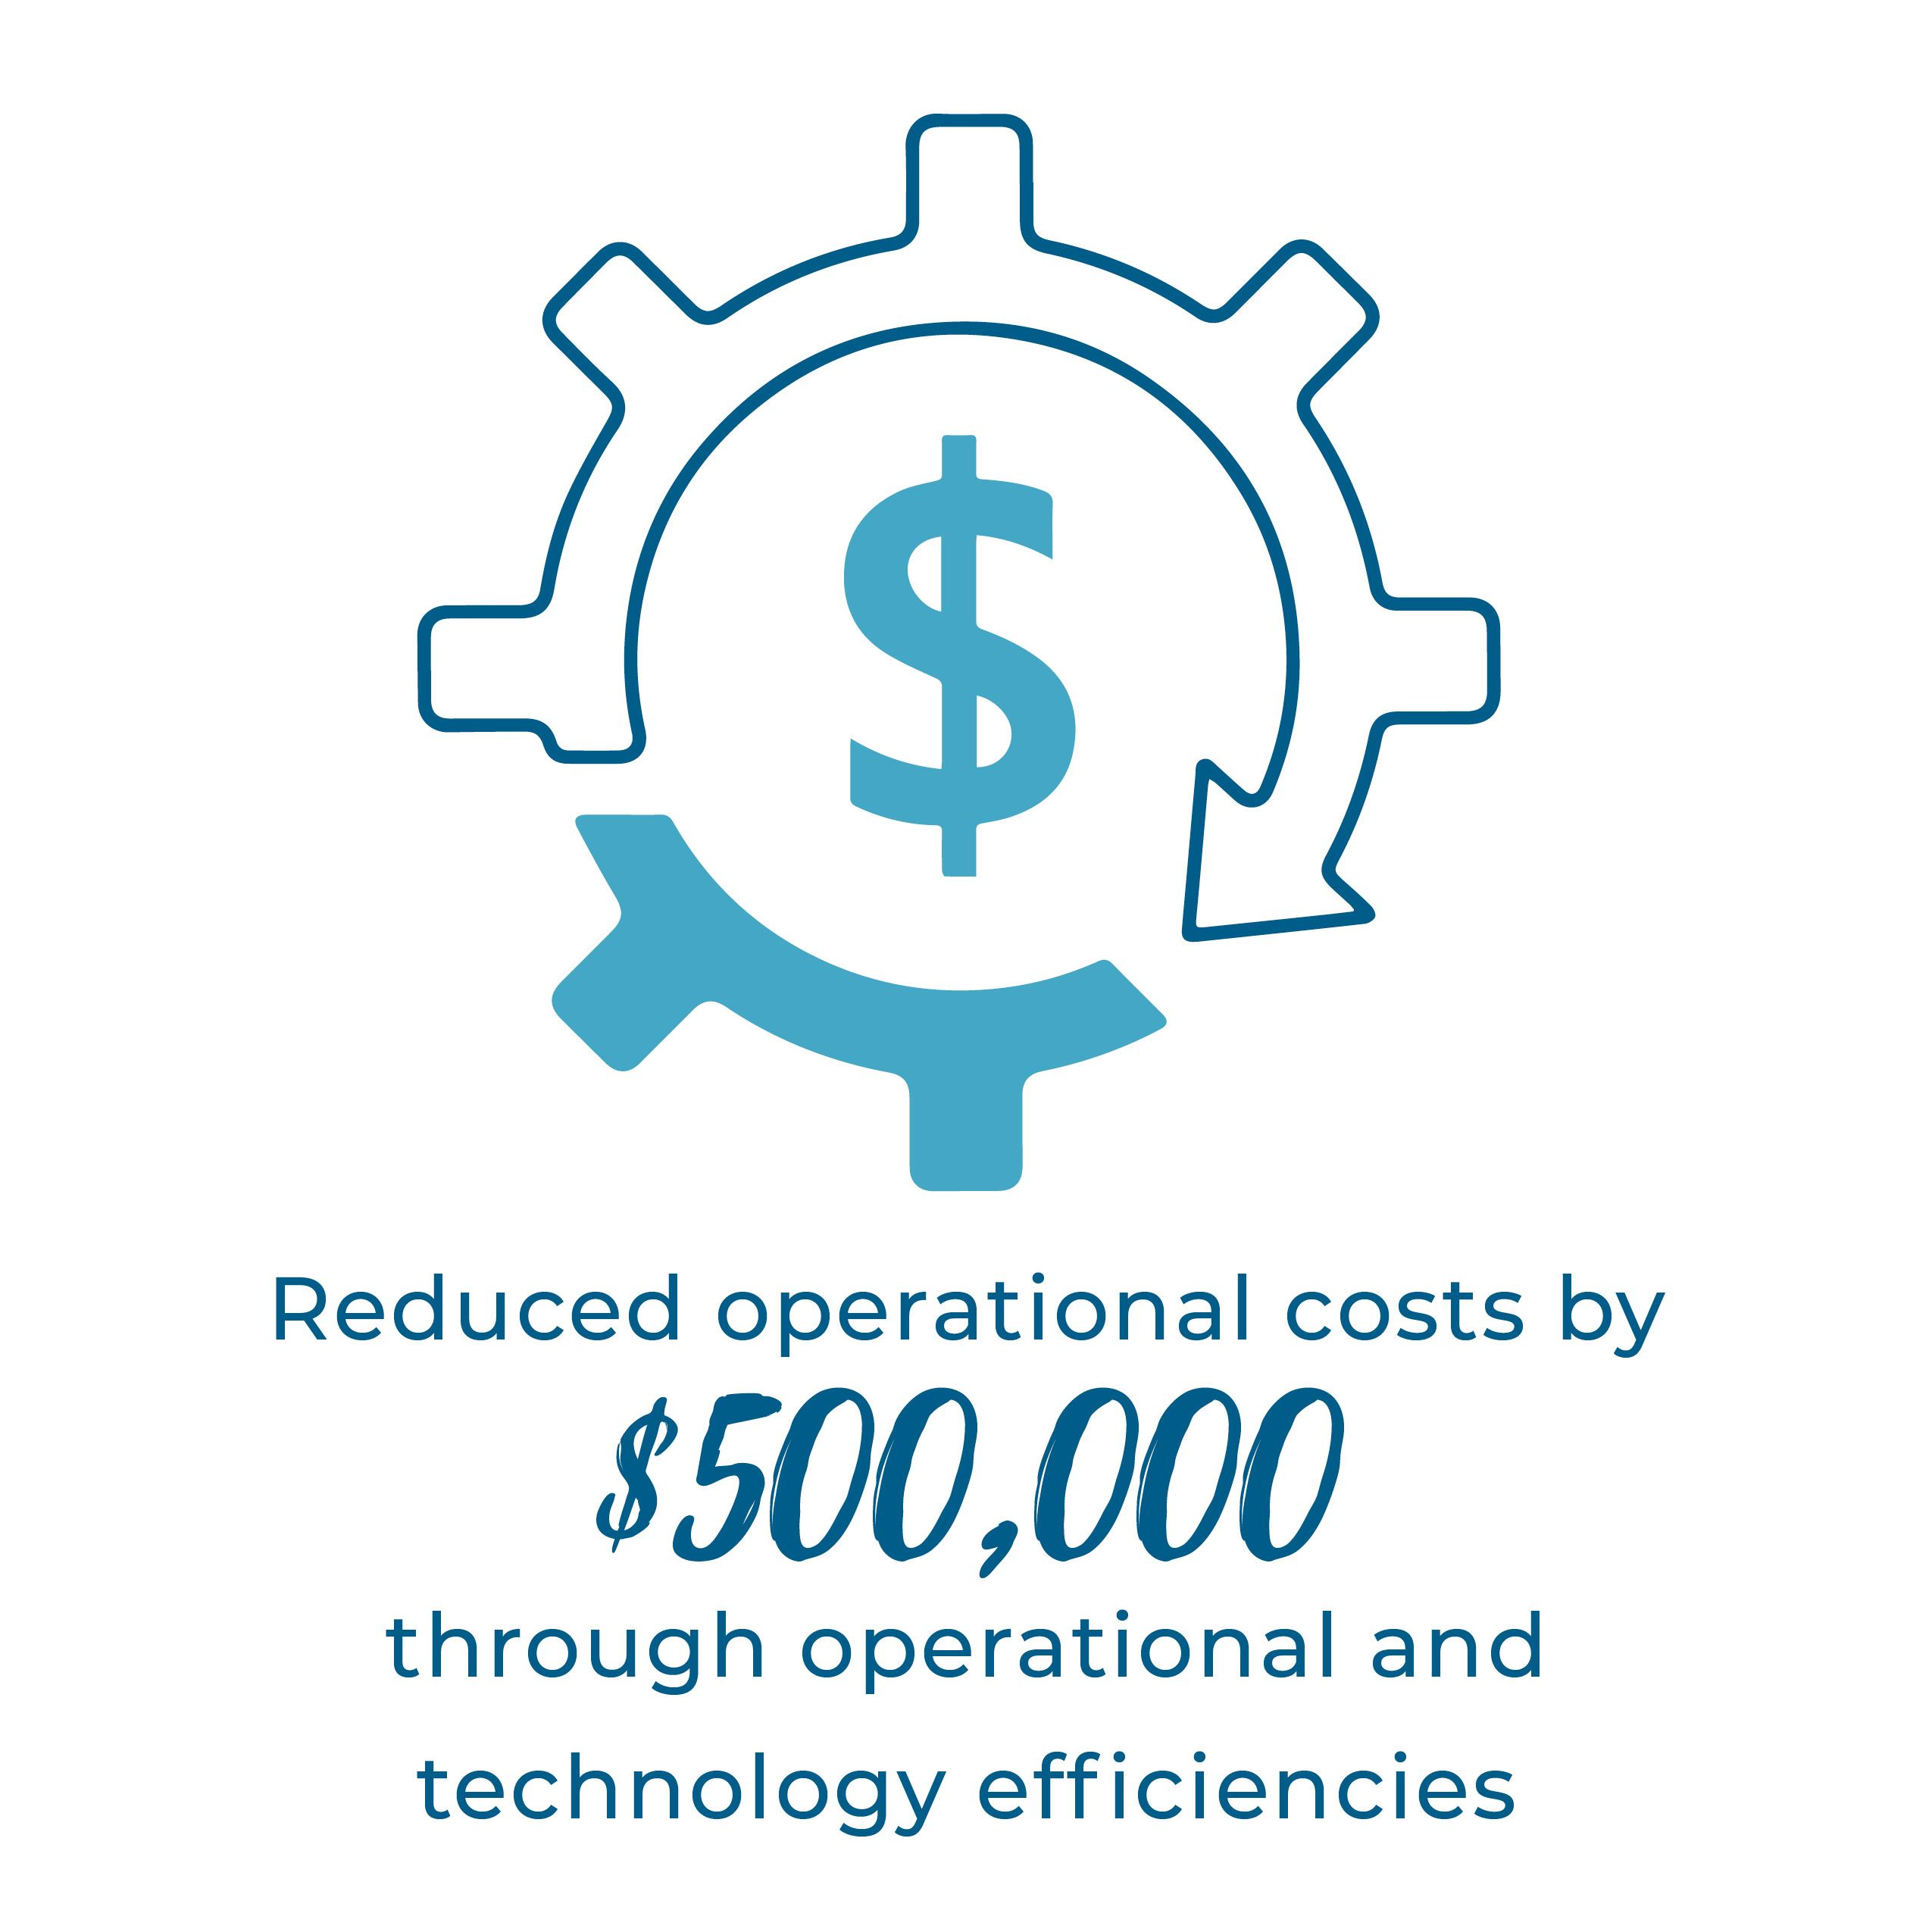 Reduced operational costs by $500,000 through operational and technology efficiencies